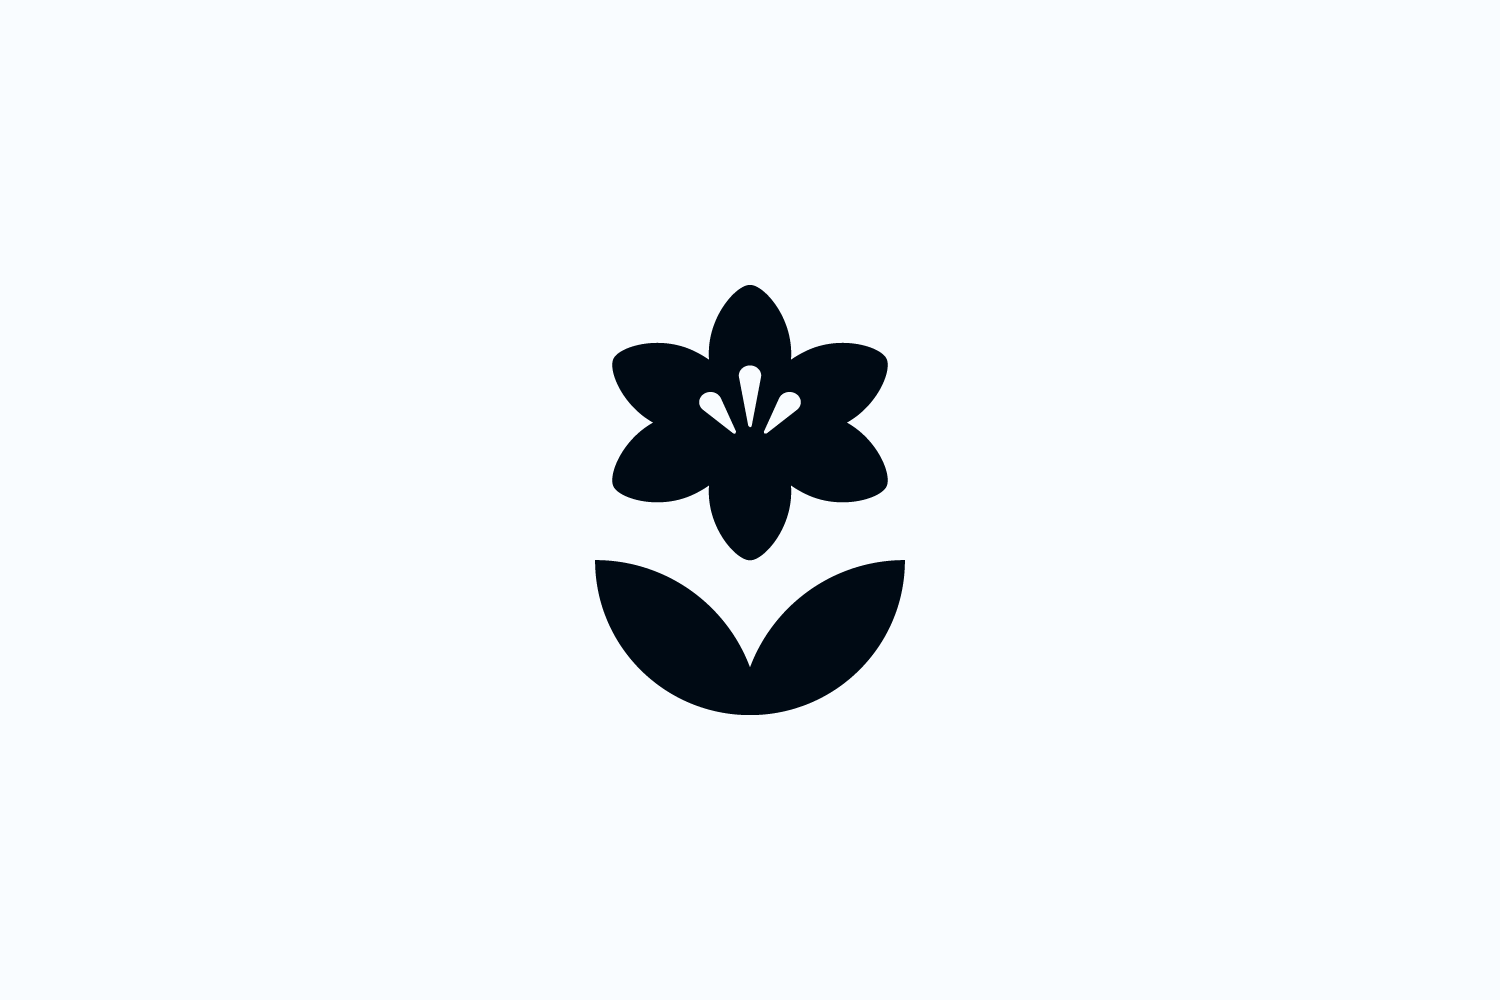 Gilly's Lilies symbol